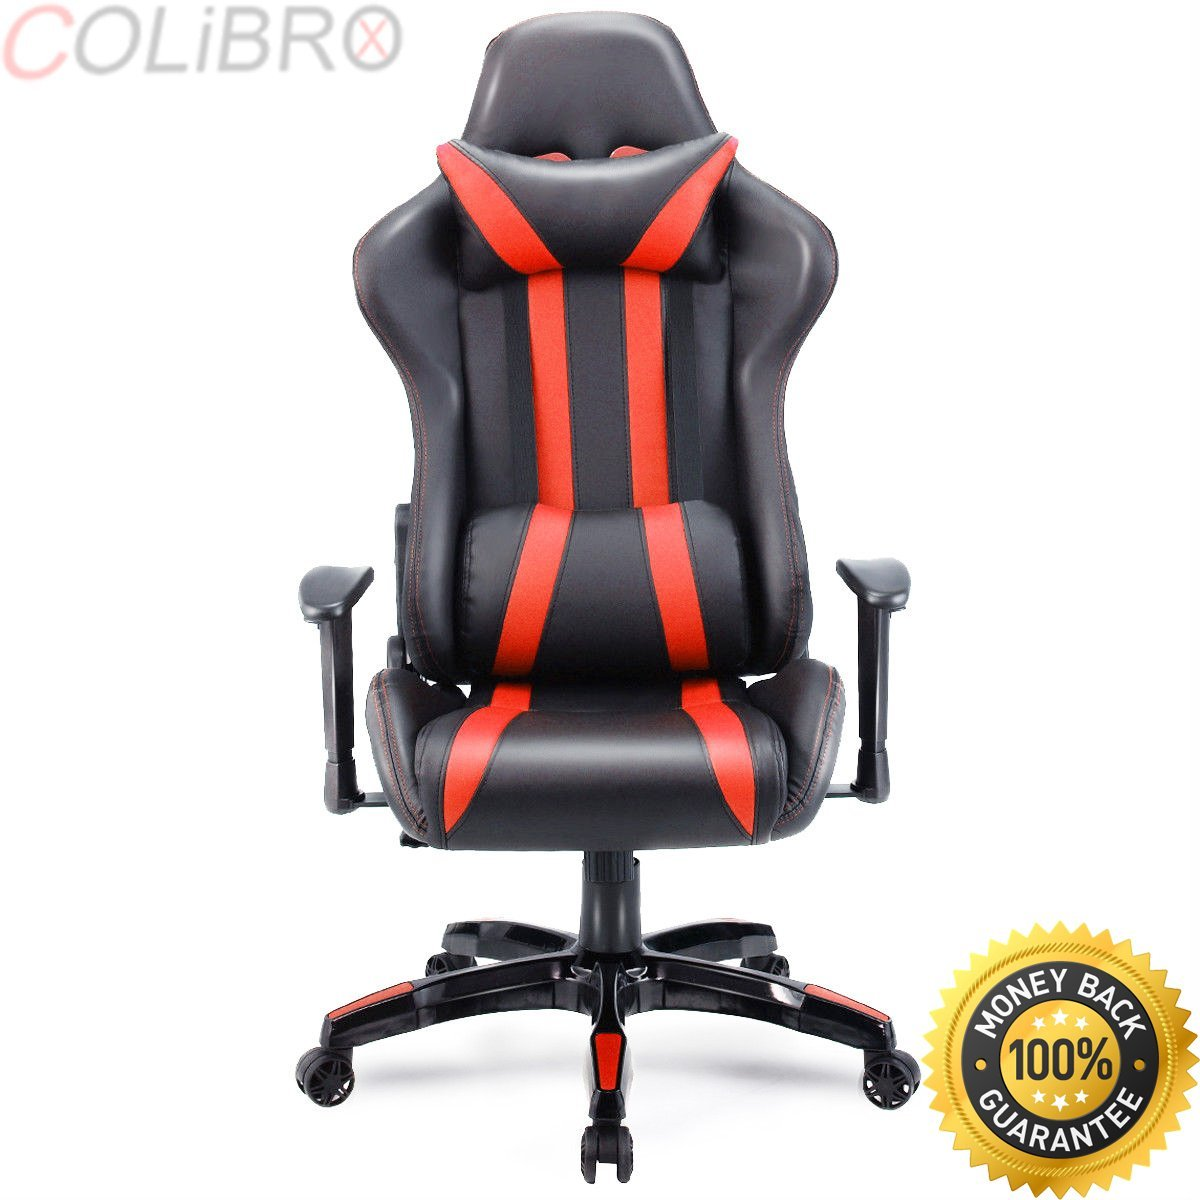 COLIBROX--Executive Racing Style High Back Reclining Chair Gaming Chair Office Computer. executive racing style high back reclining chair gaming chair office computer.racing style gaming chair.